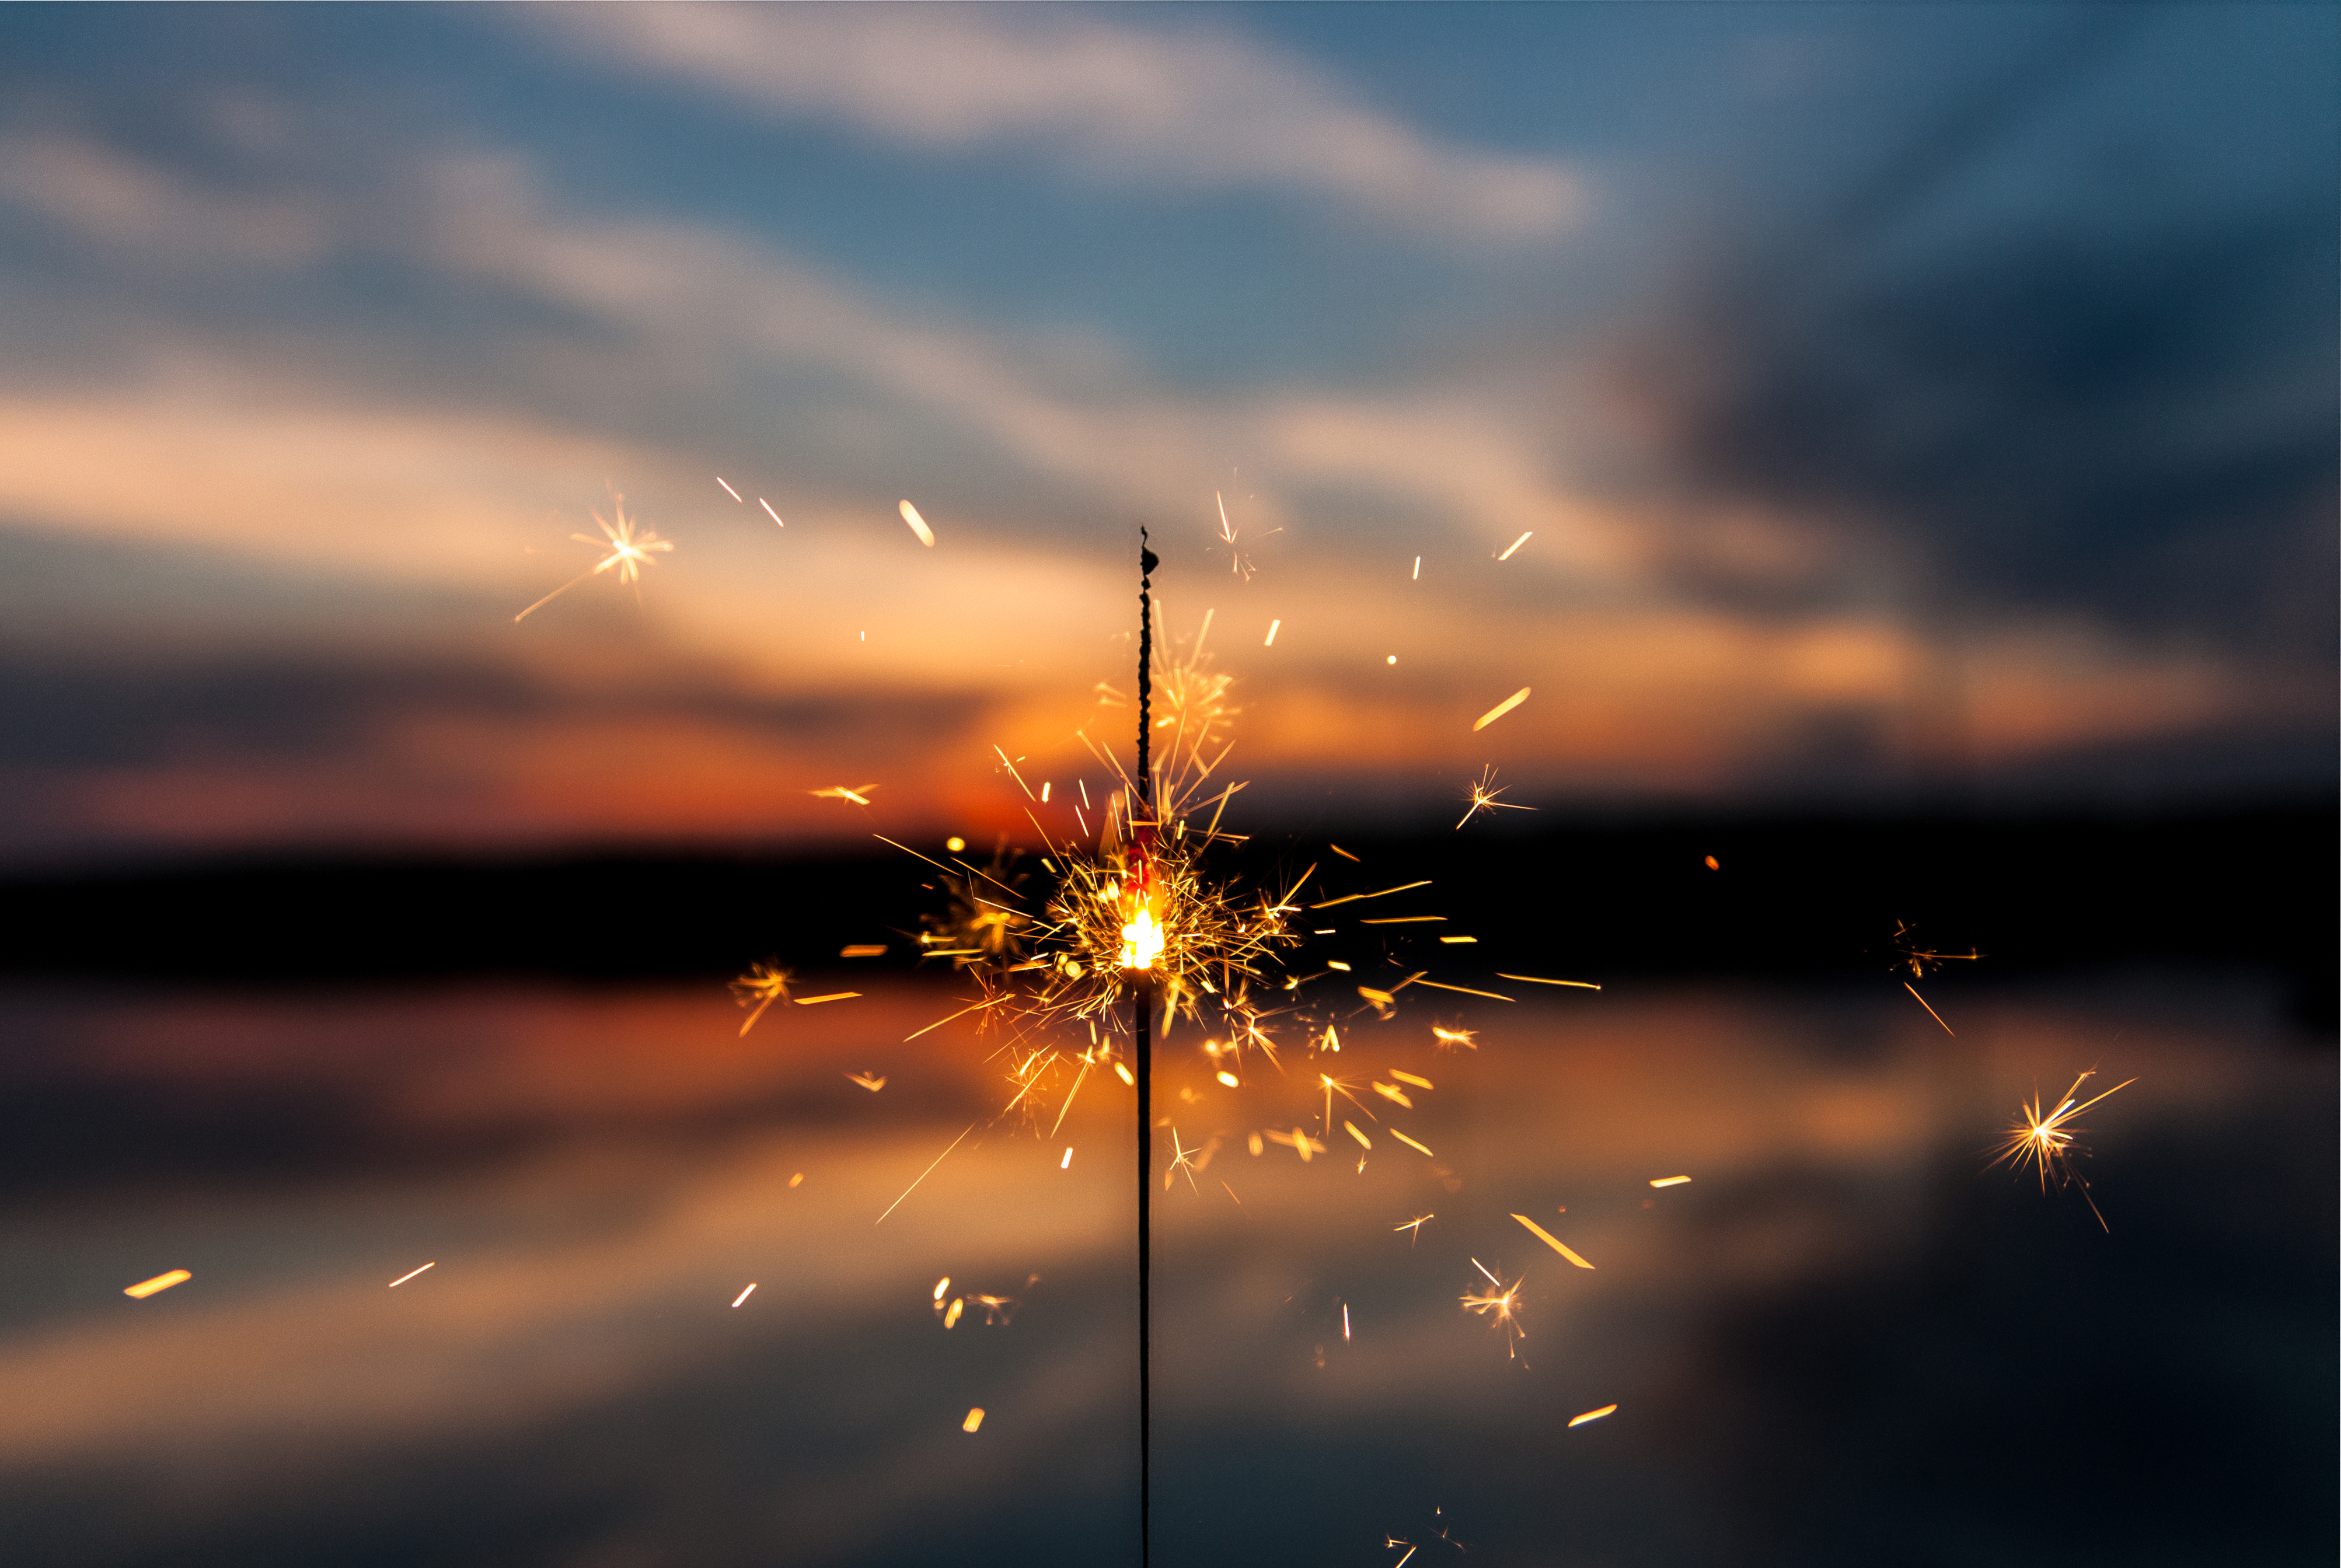 1000 Wallpapers Cute Sparkler Pictures Download Free Images On Unsplash